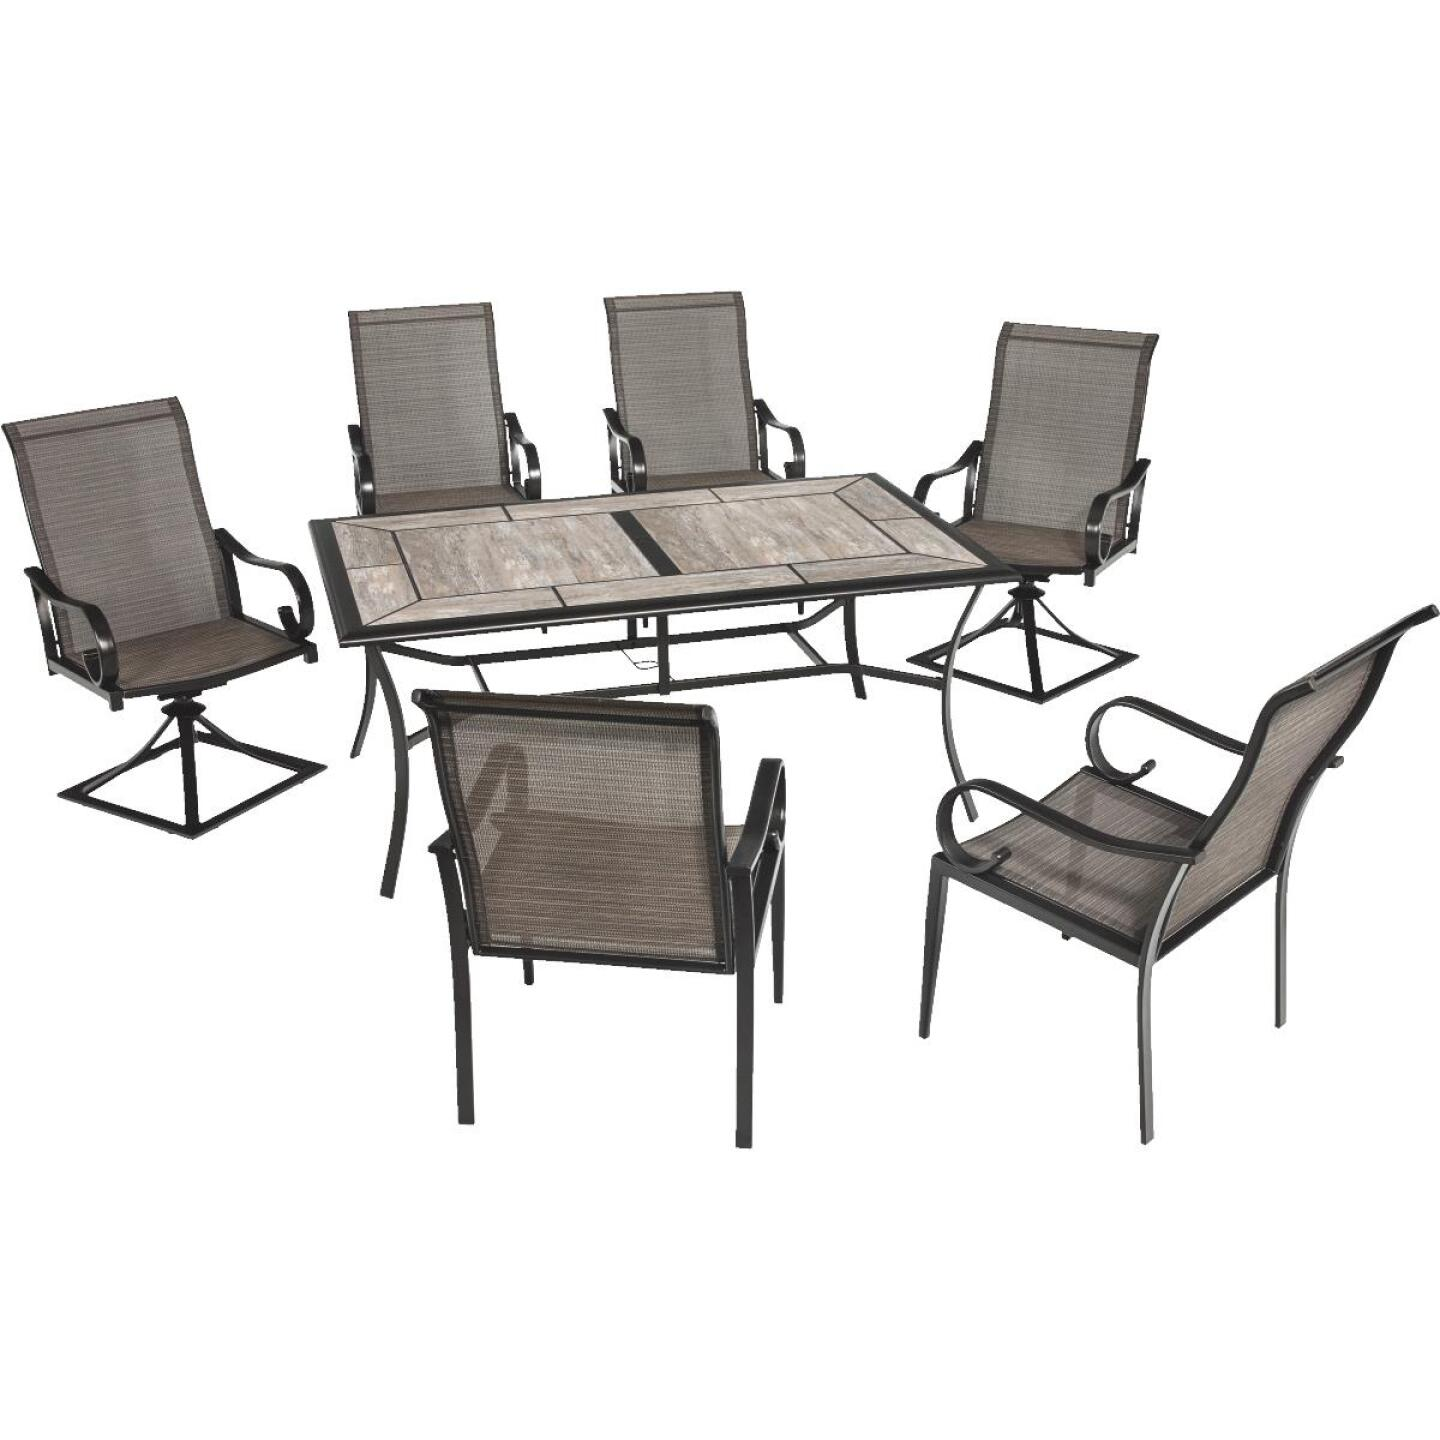 Outdoor Expressions Berkshire 7-Piece Dining Set Image 298